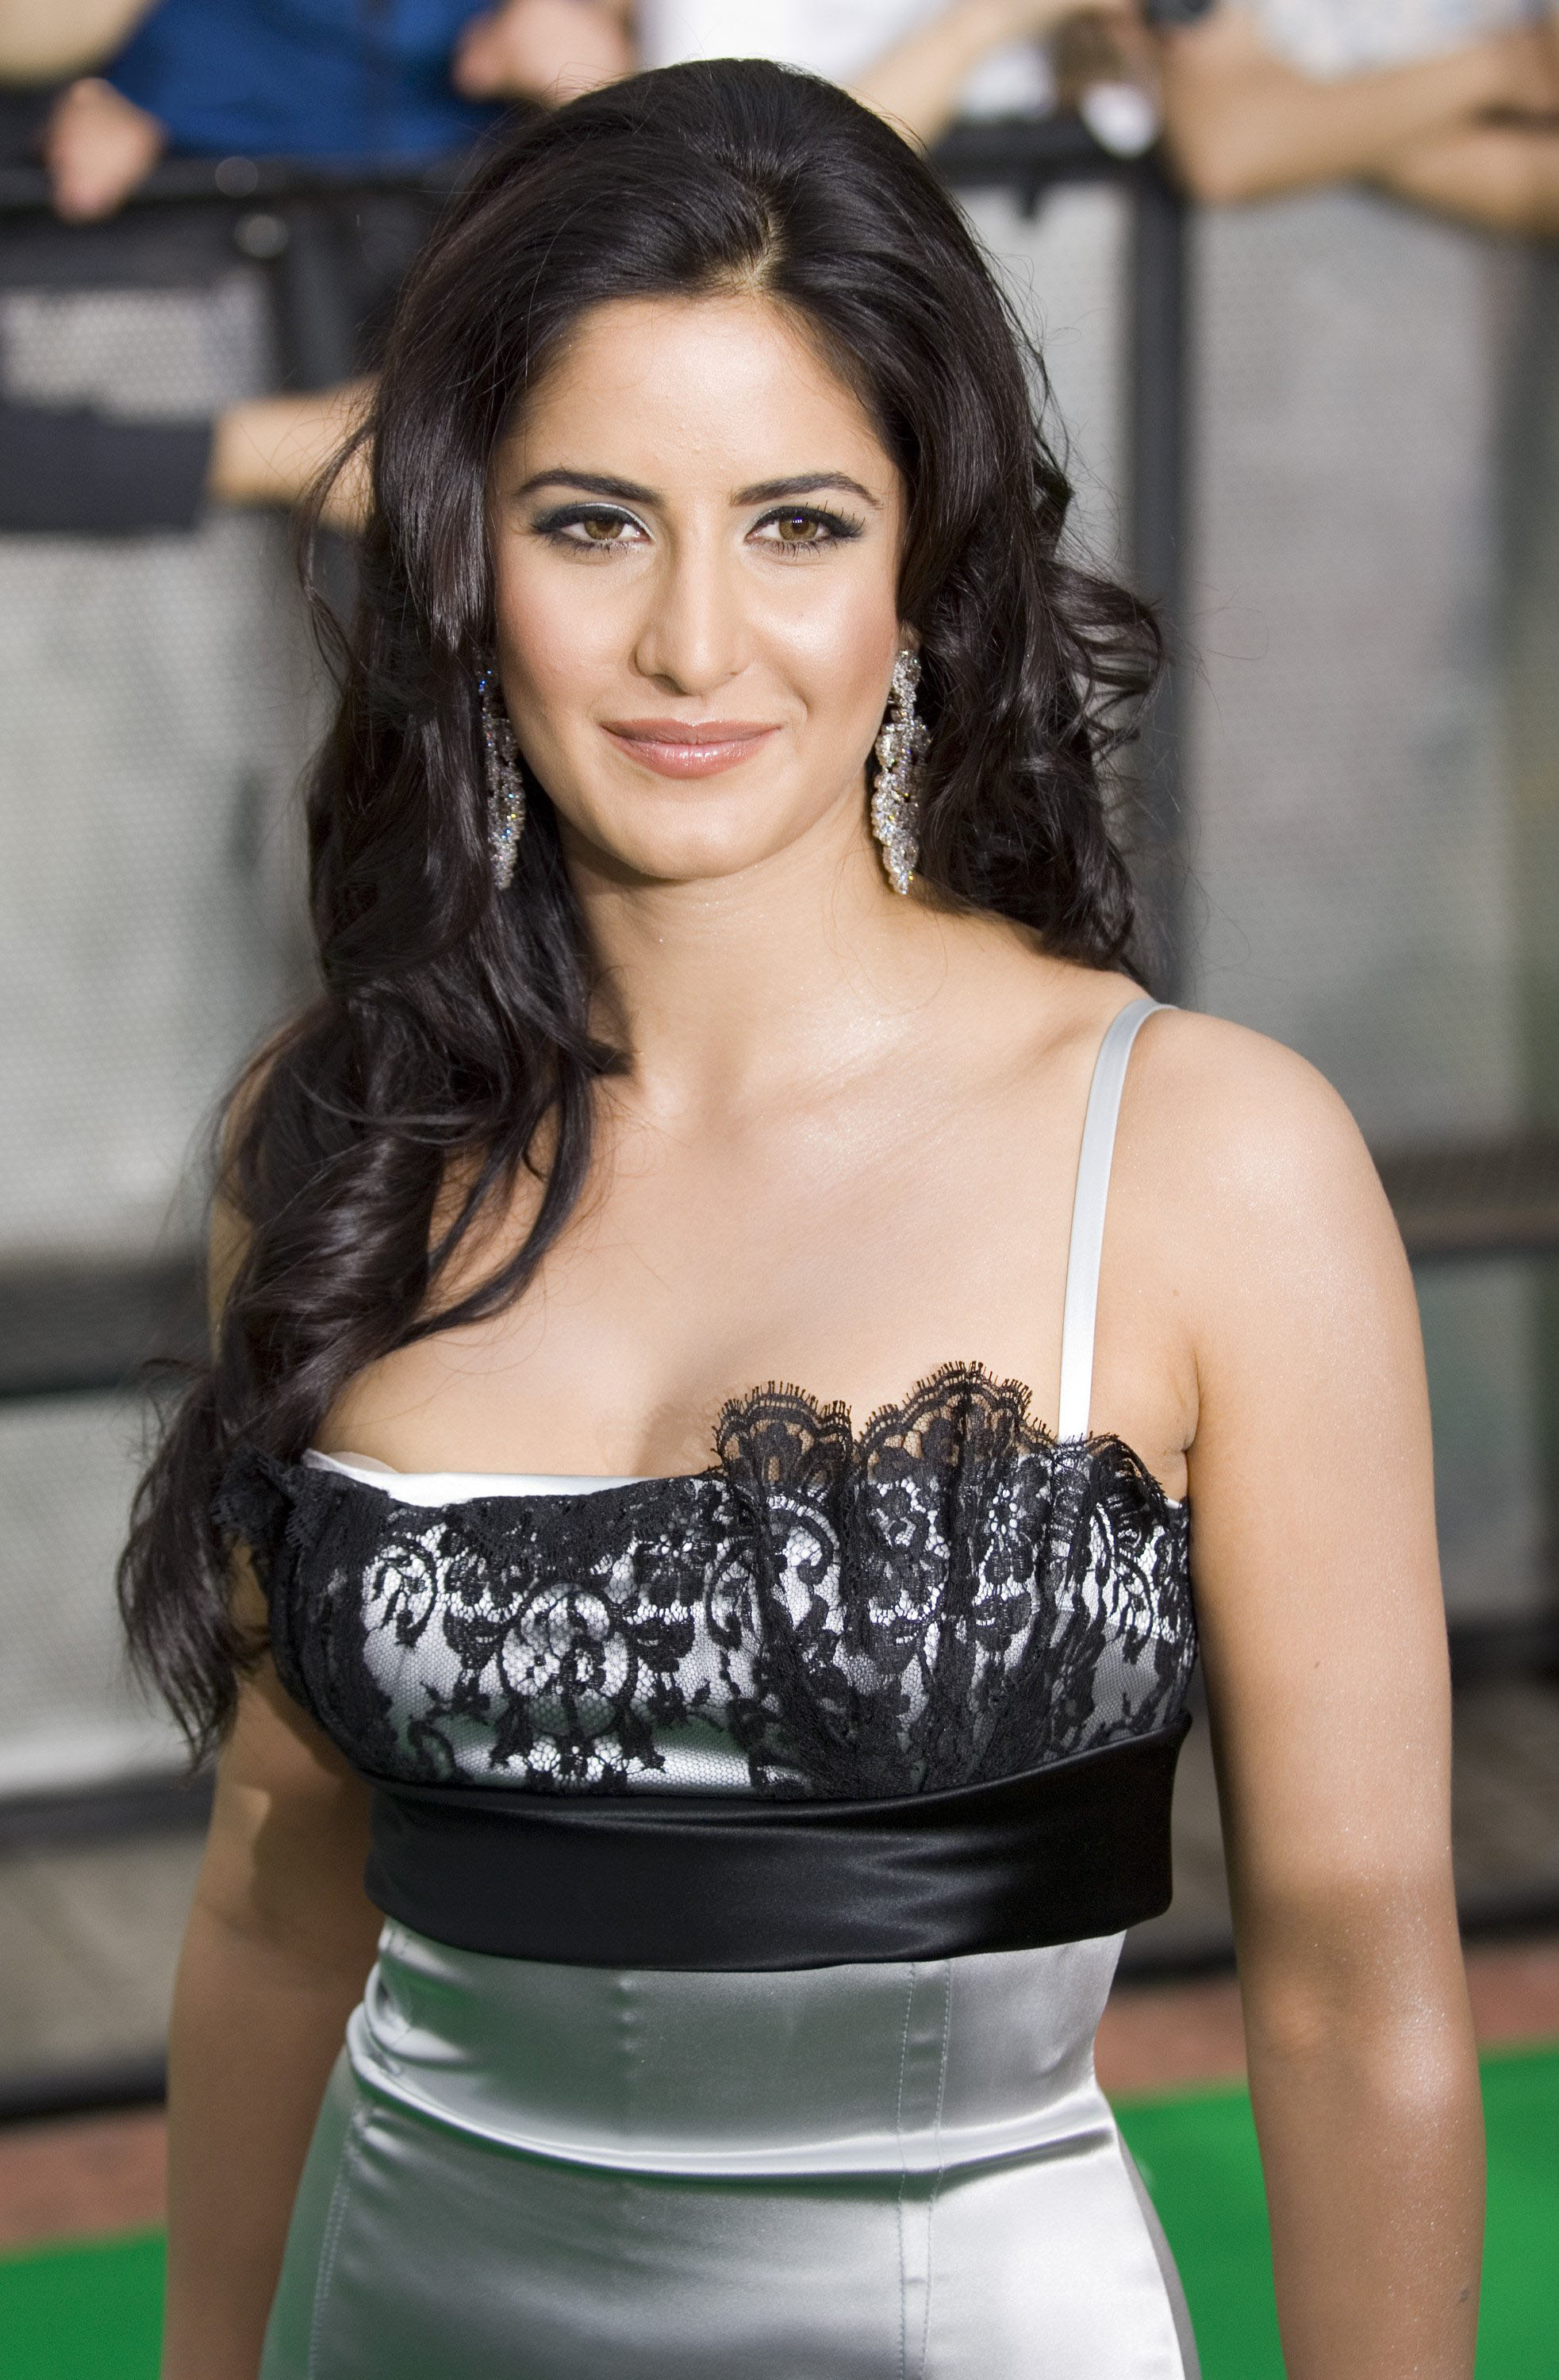 katrina bollywood bilder